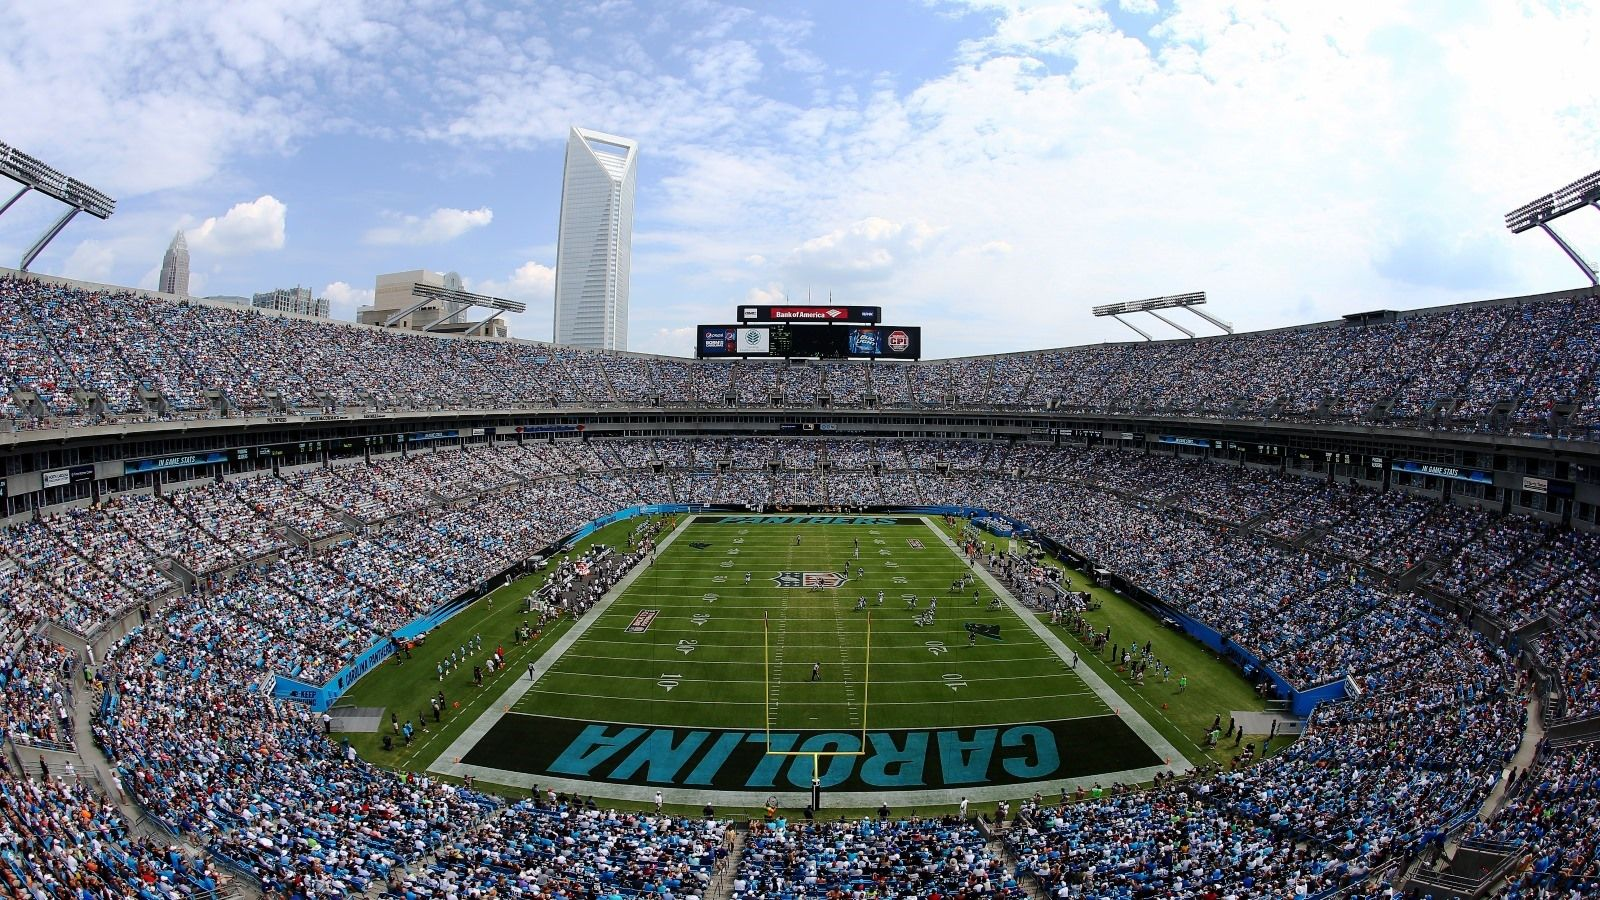 panthers stadium2.jpg